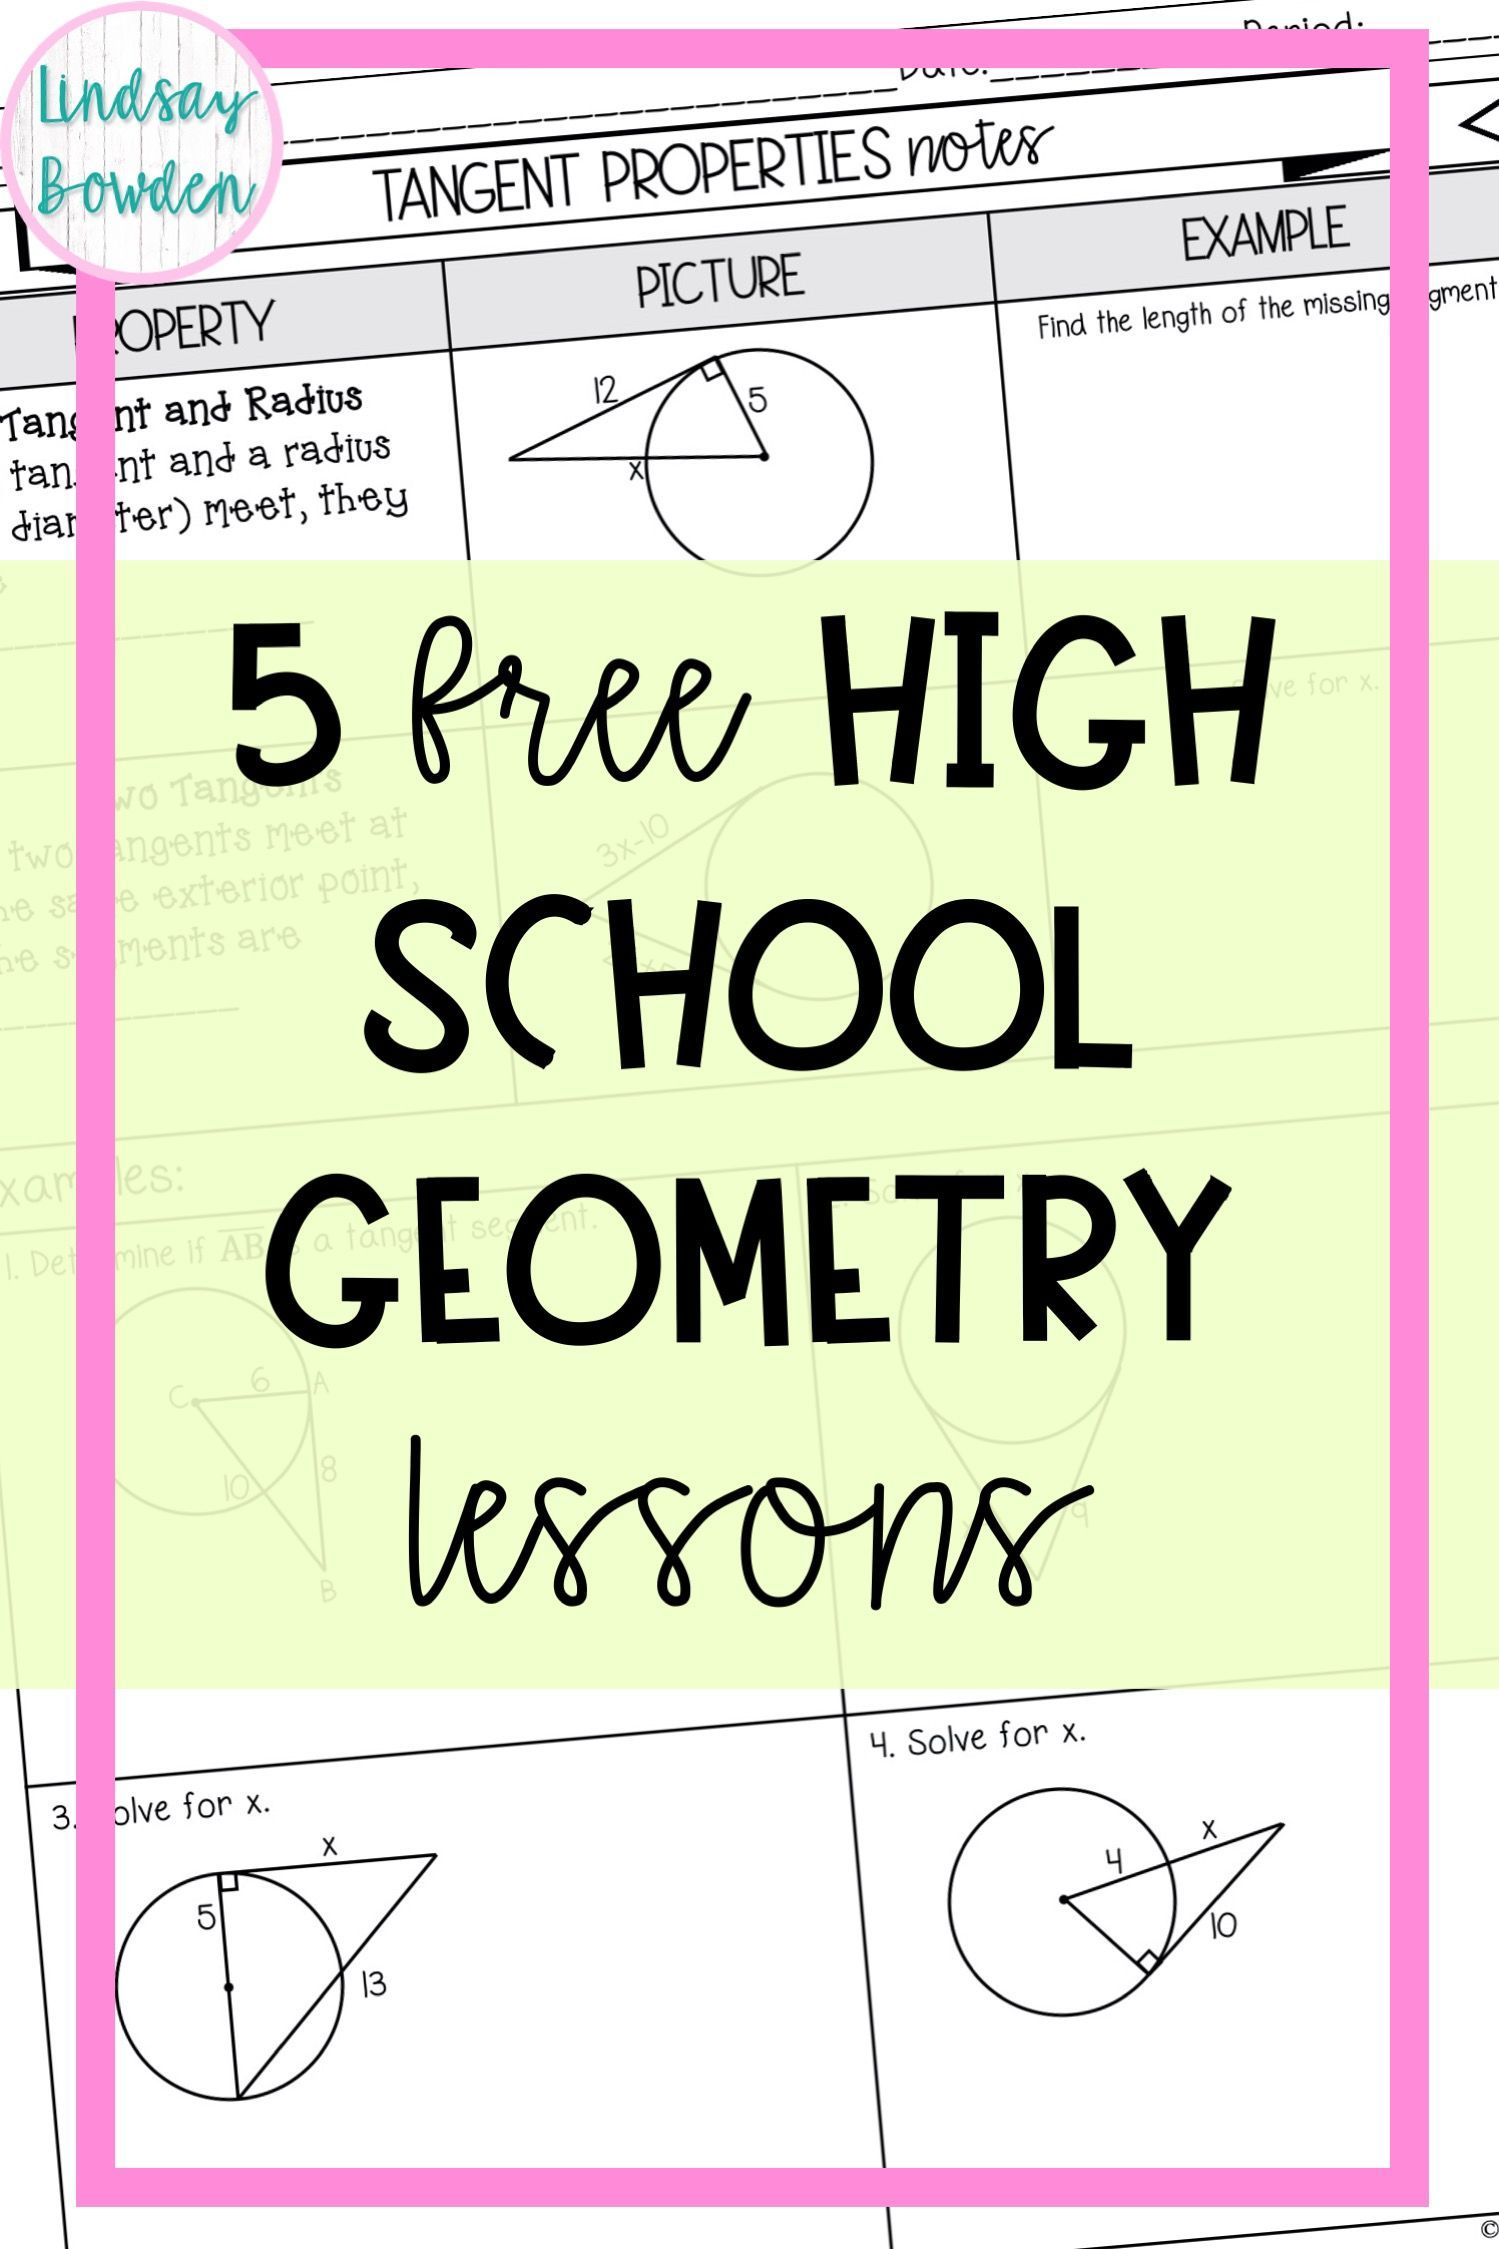 5 Geometry Lessons Geometry Lessons High School Geometry Notes Math Review Worksheets